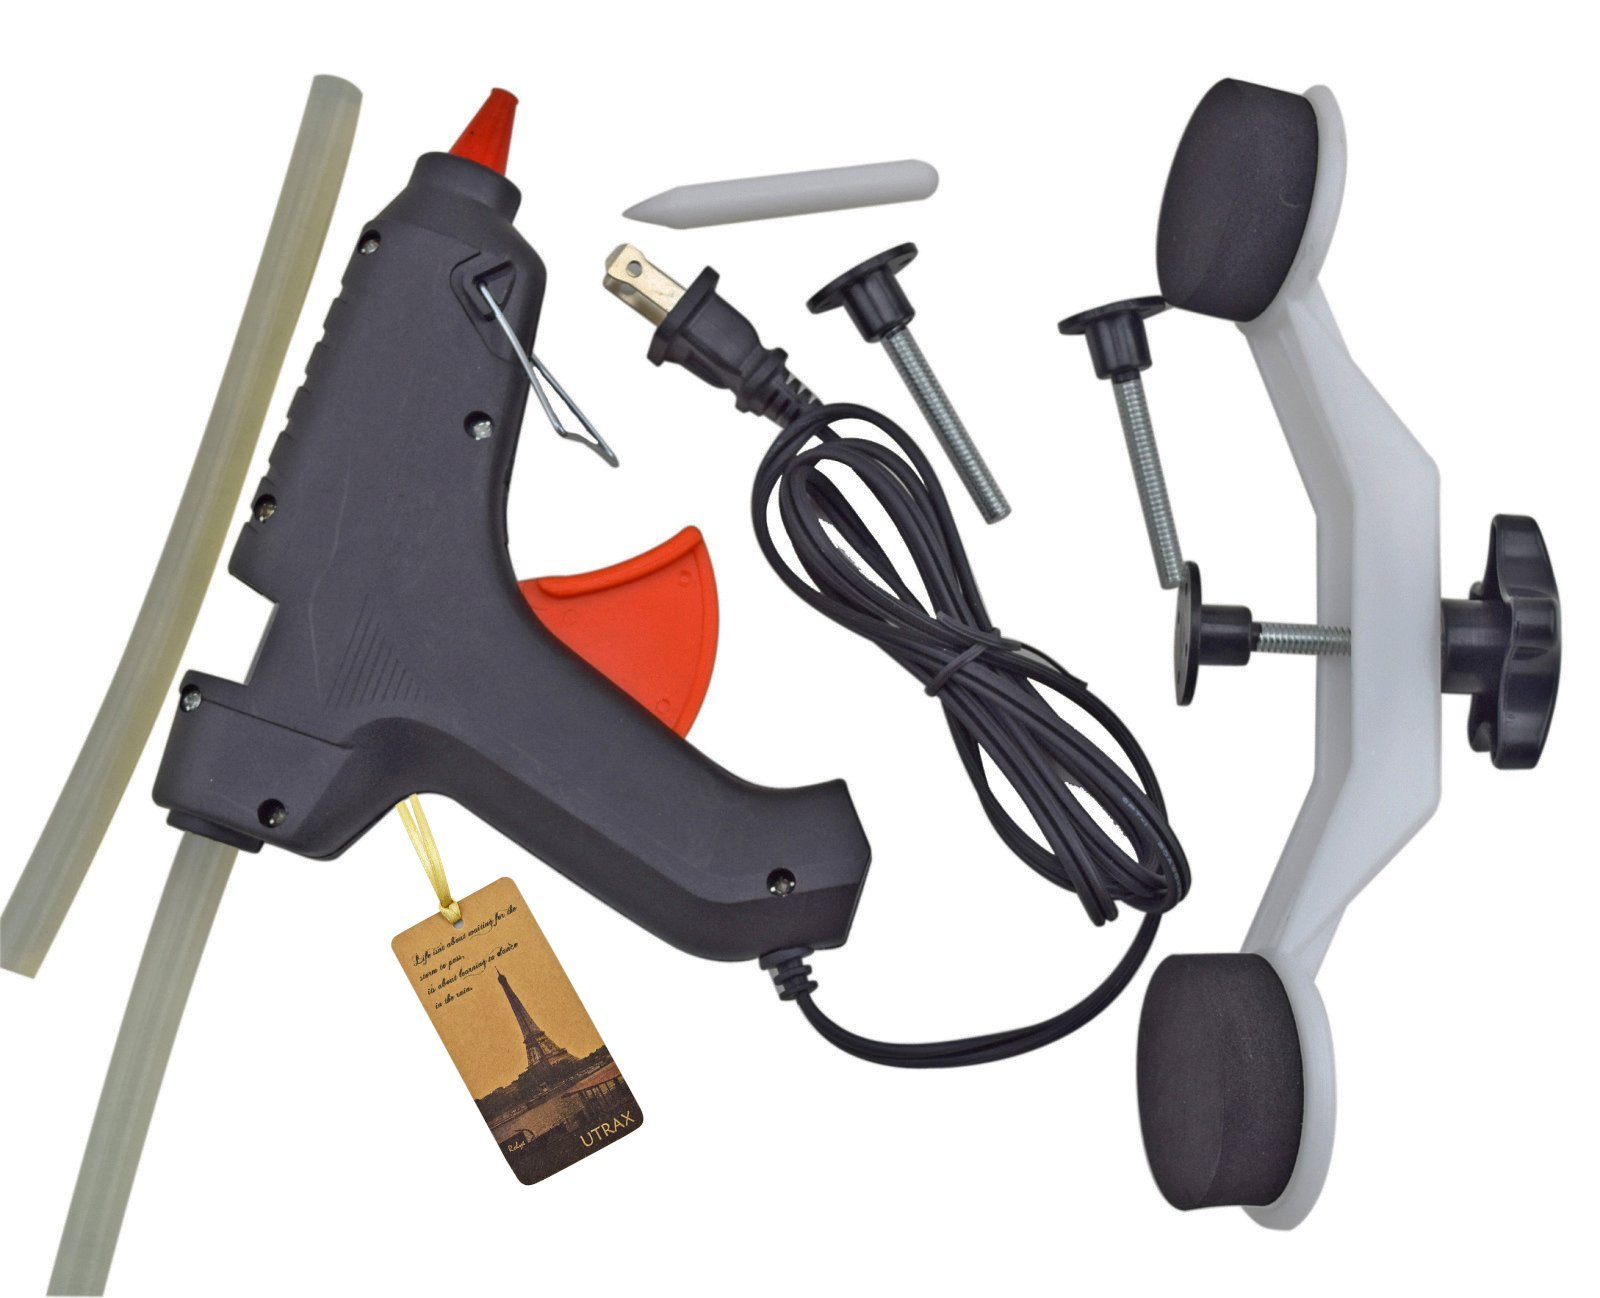 Auto dent remove Device Tool set Car Bodywork Panel Dent Puller Ding Remover Repair Kit with US standard plug